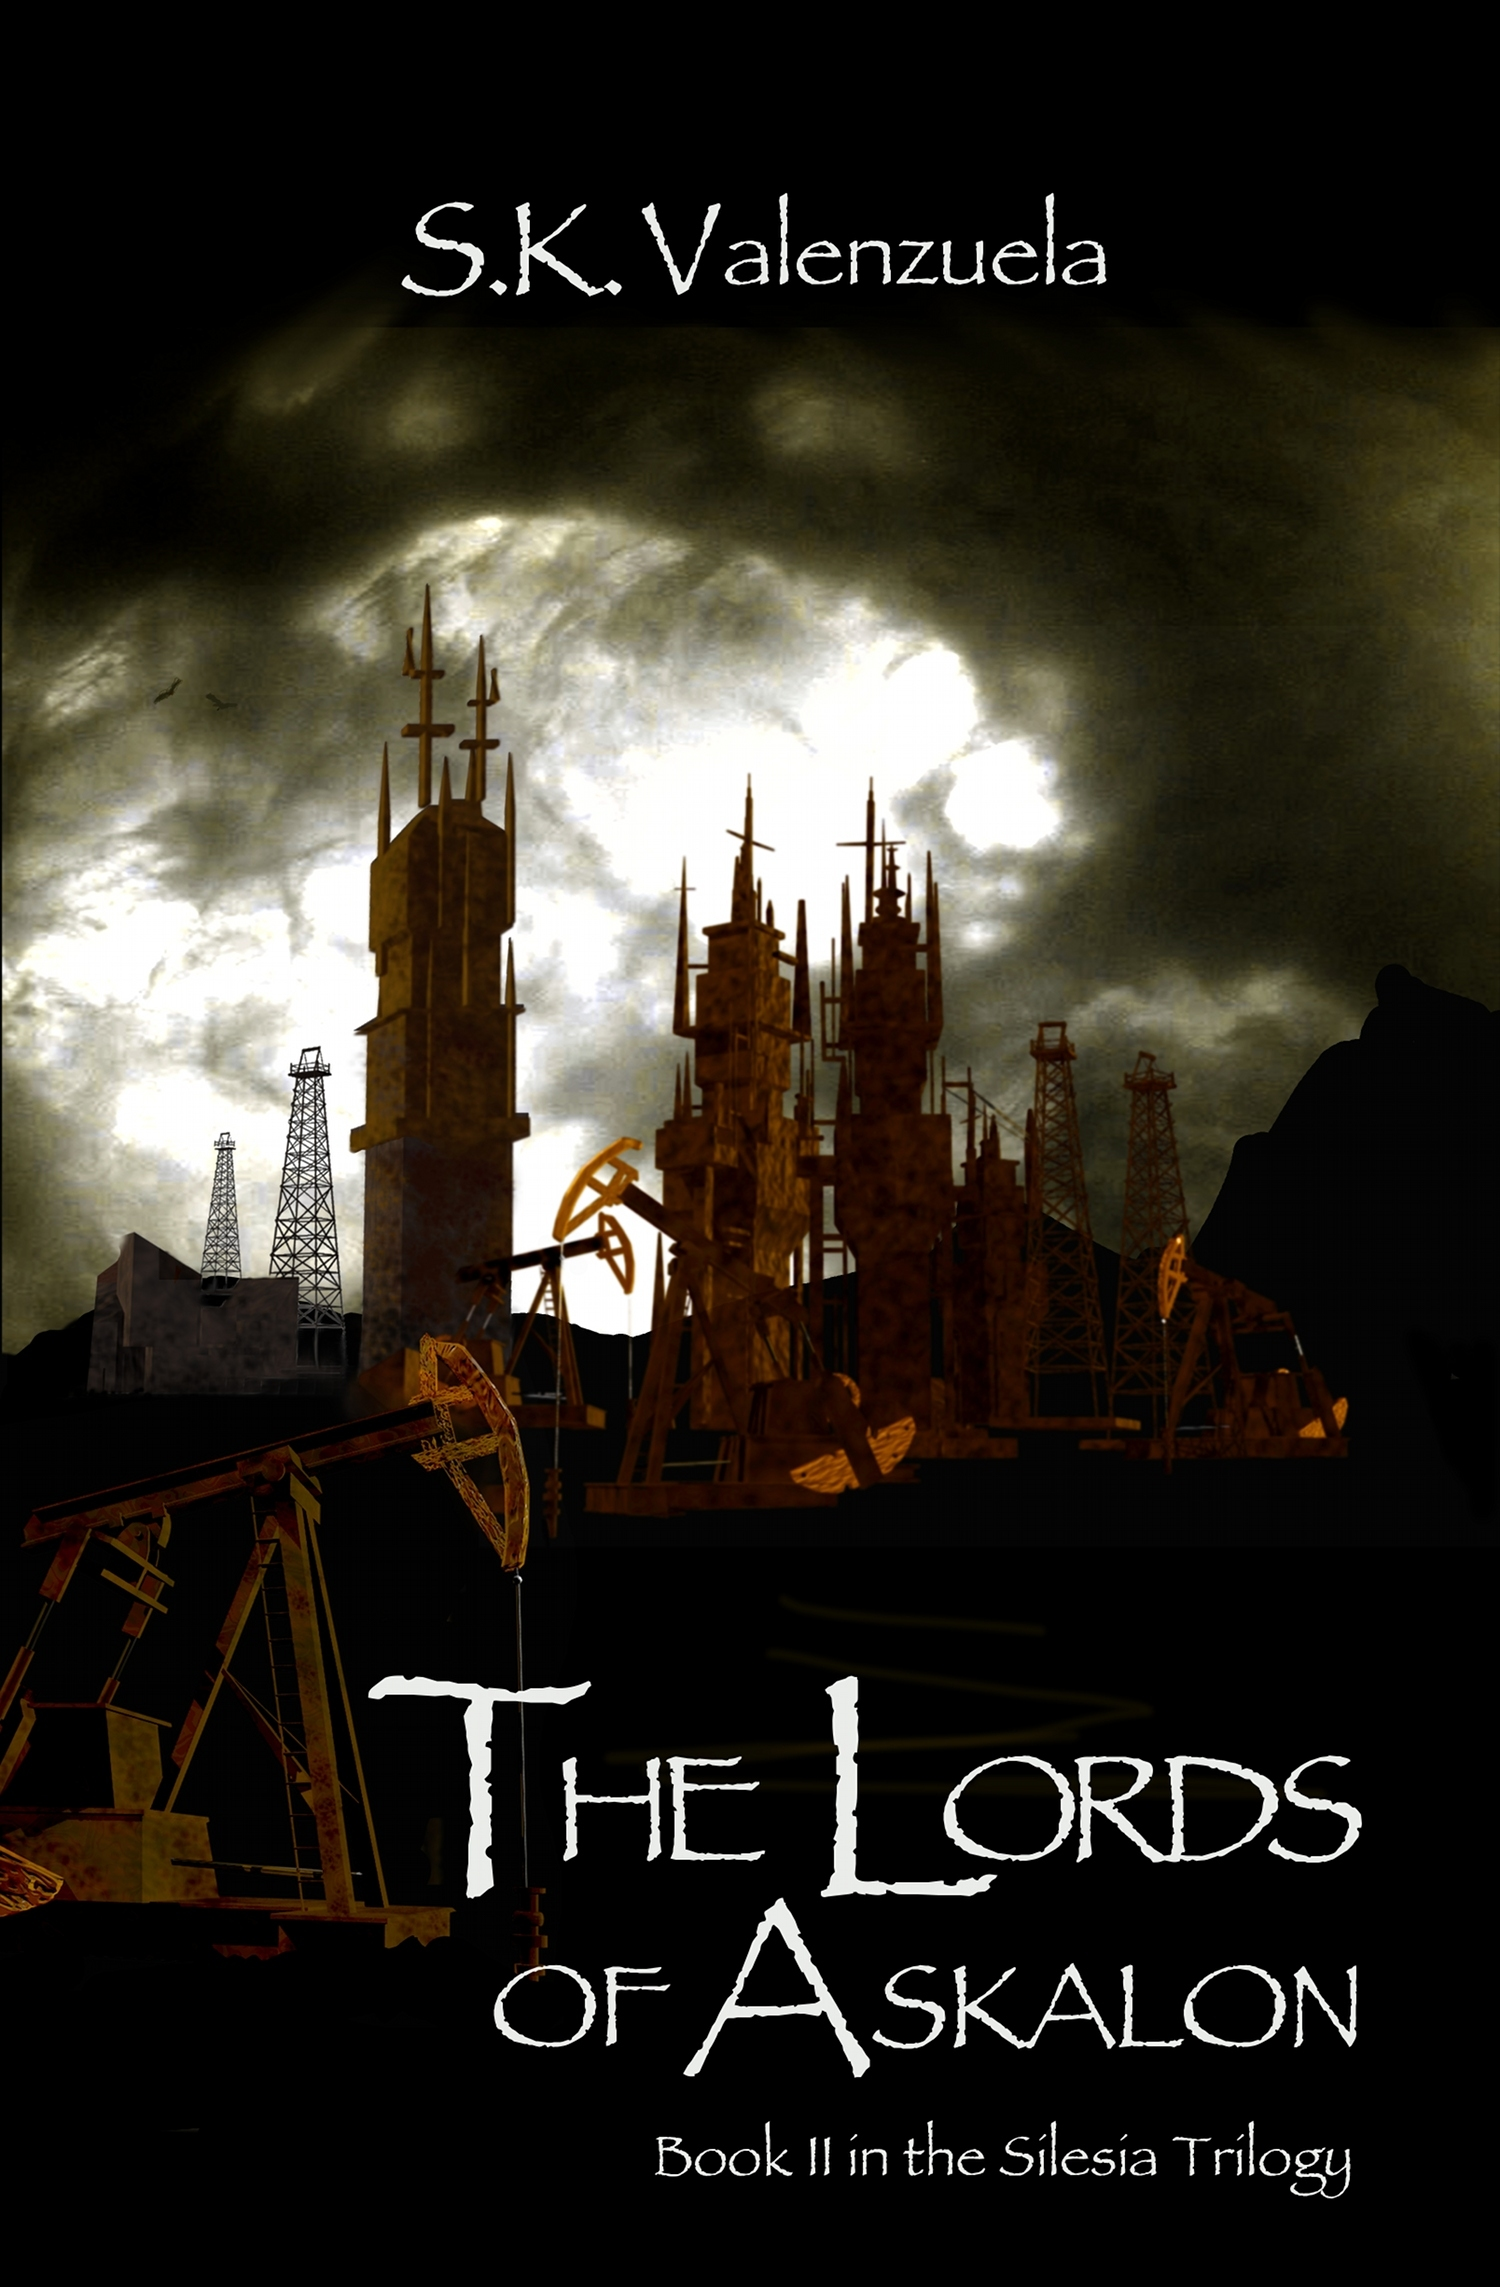 The Lords of Askalon (Silesia Trilogy, Book II)